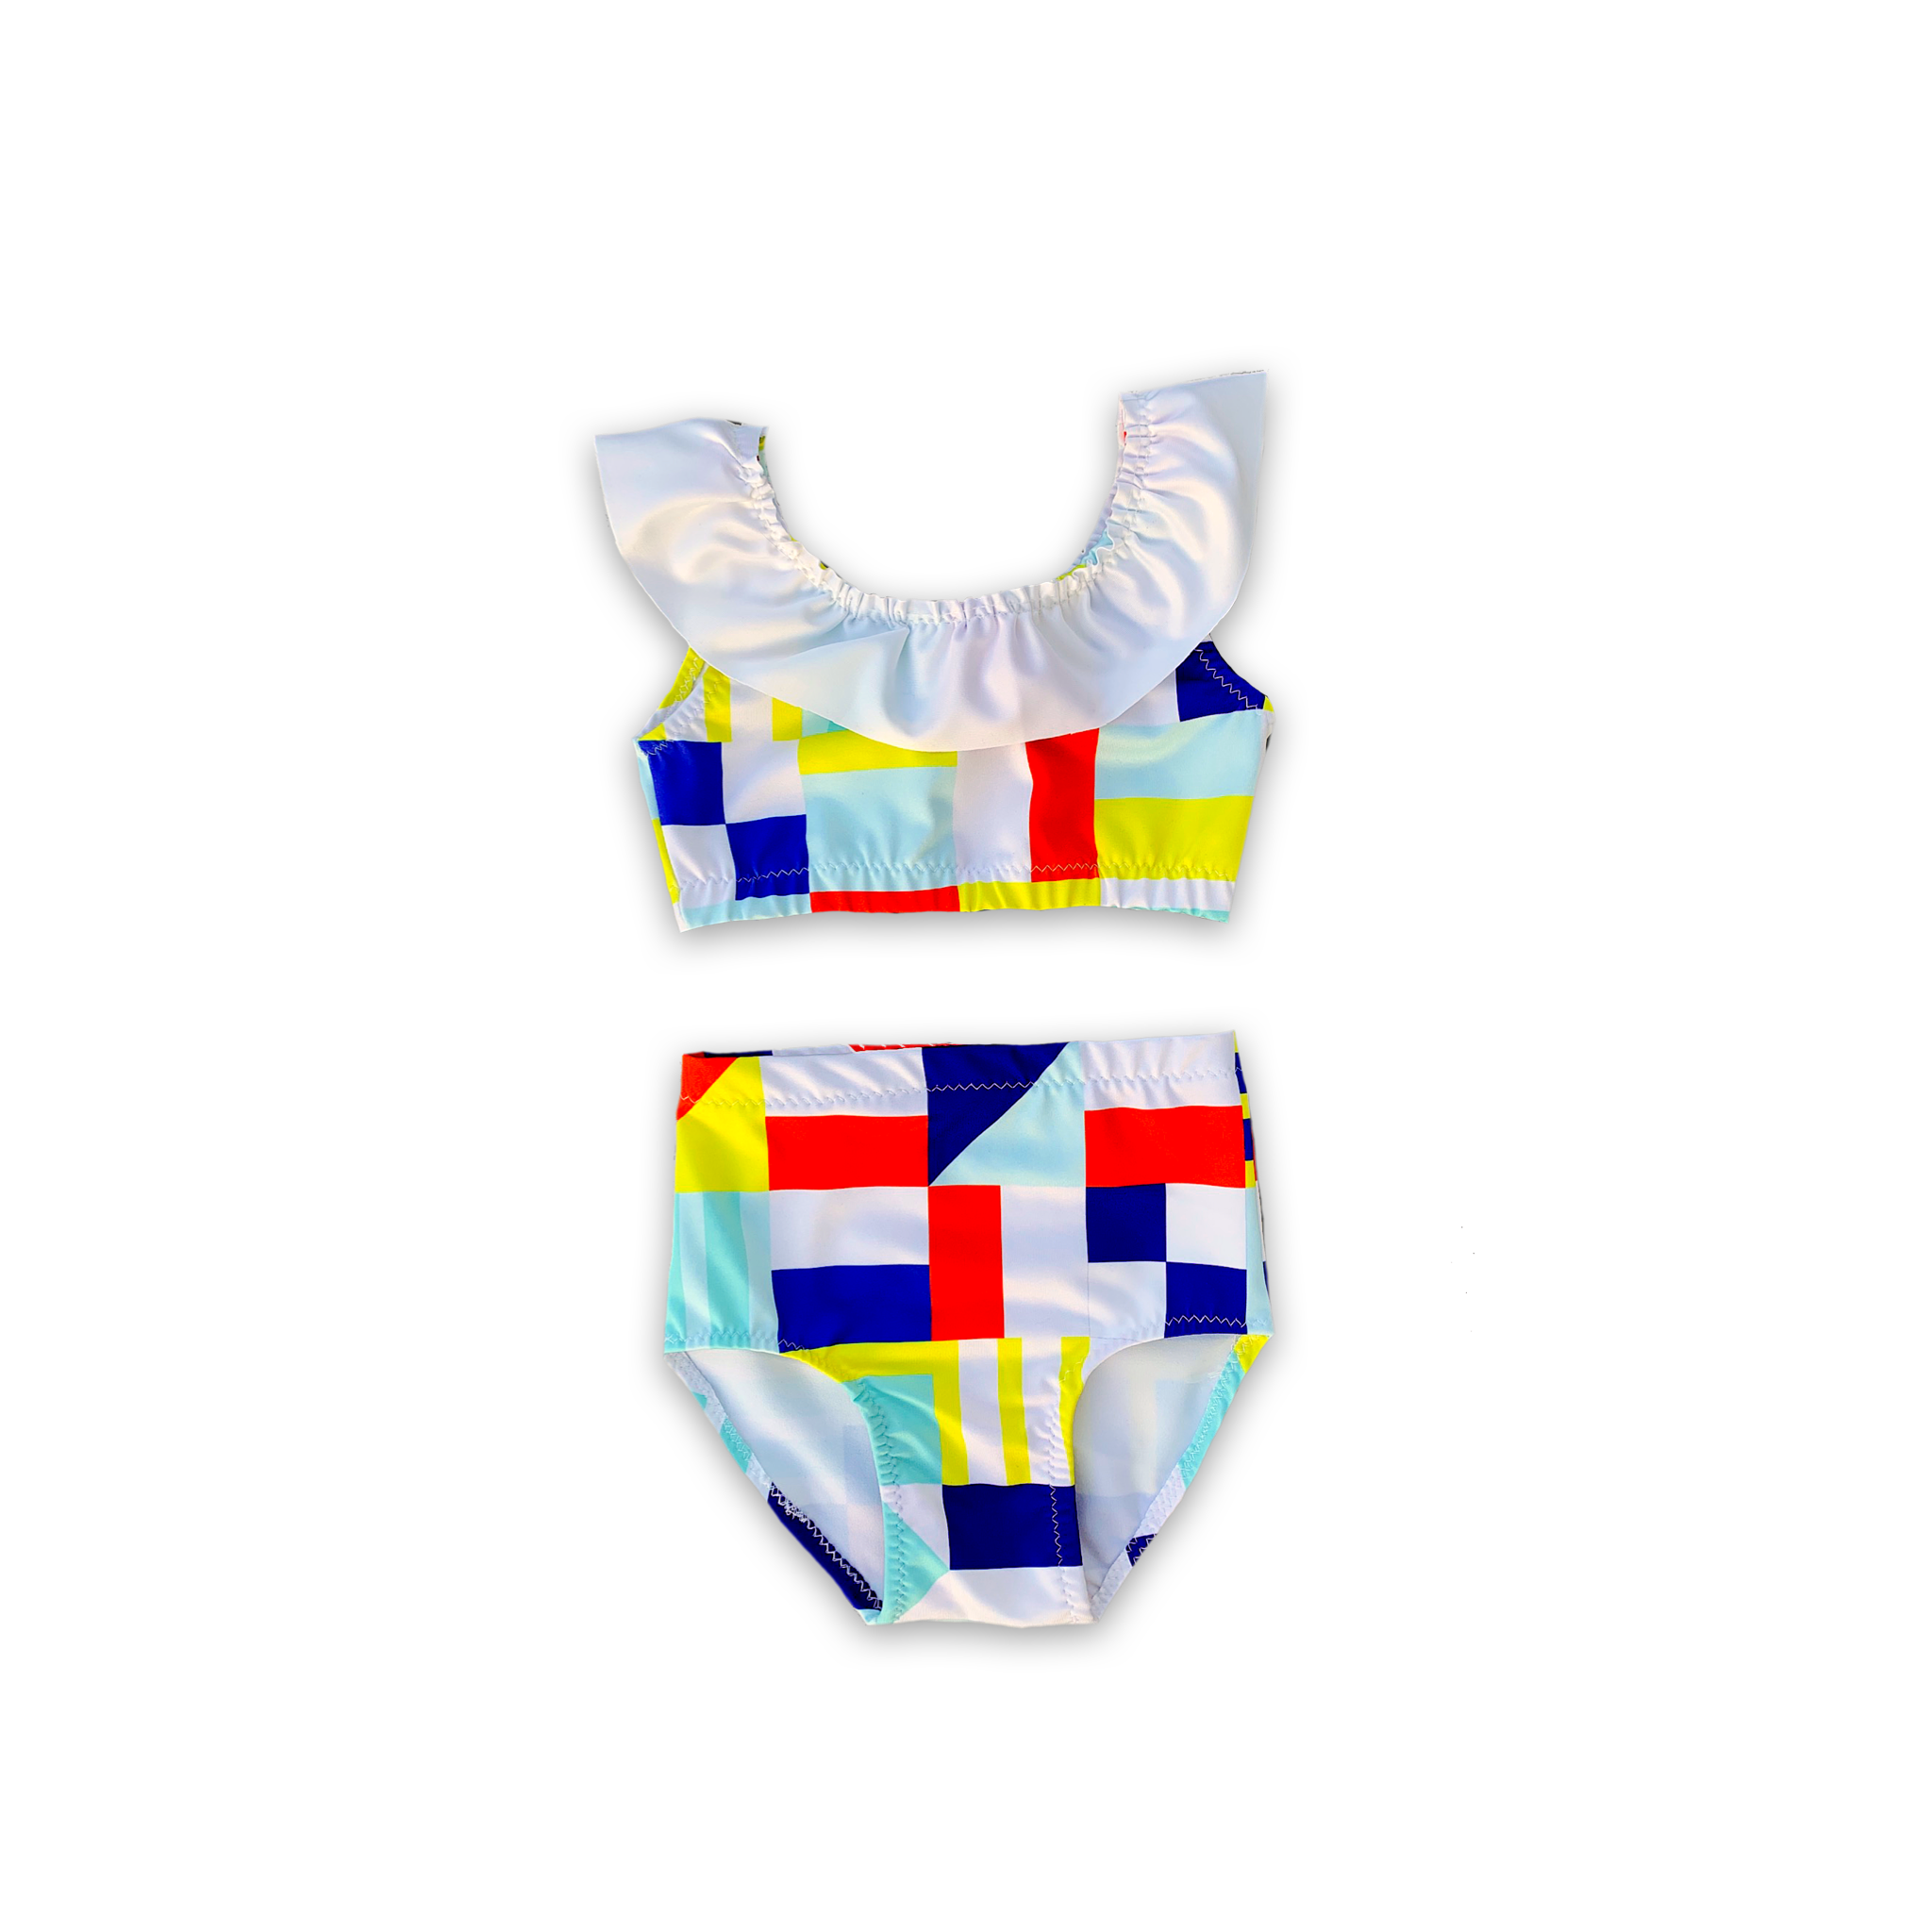 Saint Tropez (Nautical Flag) High Waist Ruffle Bikini-Baby, Toddler & Kids